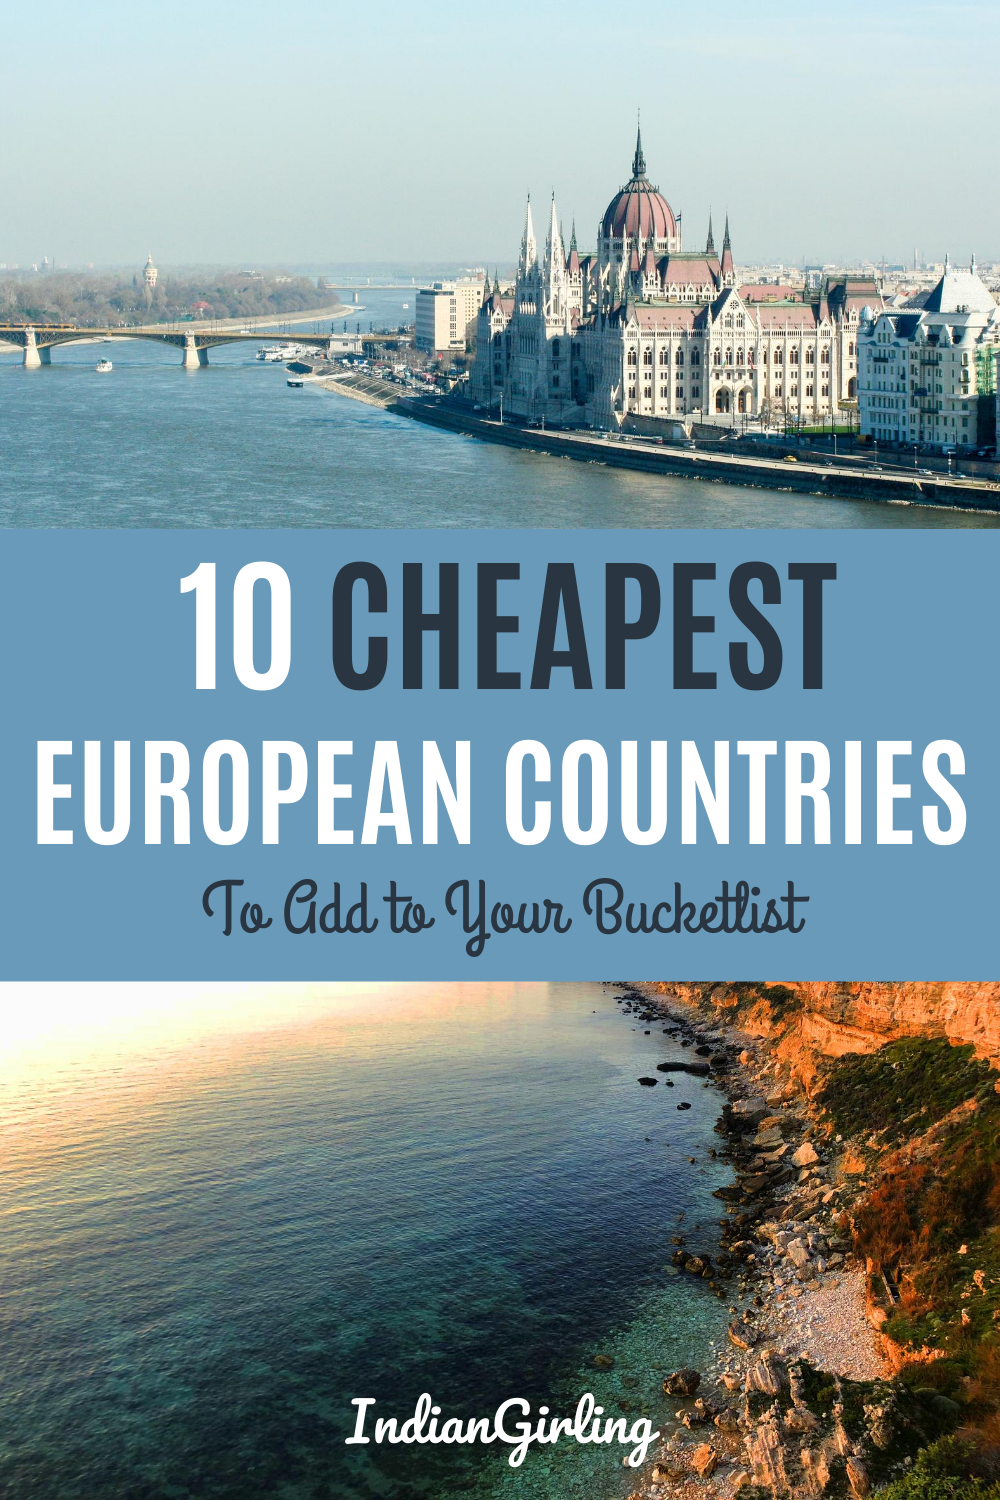 Who said traveling Europe can't be done on a budget? Believe it or not, it's DEFINITELY possible to travel Europe on a budget! This list of 10 of the cheapest countries to visit in Europe, that are as gorgeous as they are budget-friendly, will show you that cheap travel in Europe really does exist. #europetraveltips #cheapeuropedestinations #budgettravel #eurotrip #budgettravelineurope #europeitinerary #europetravel